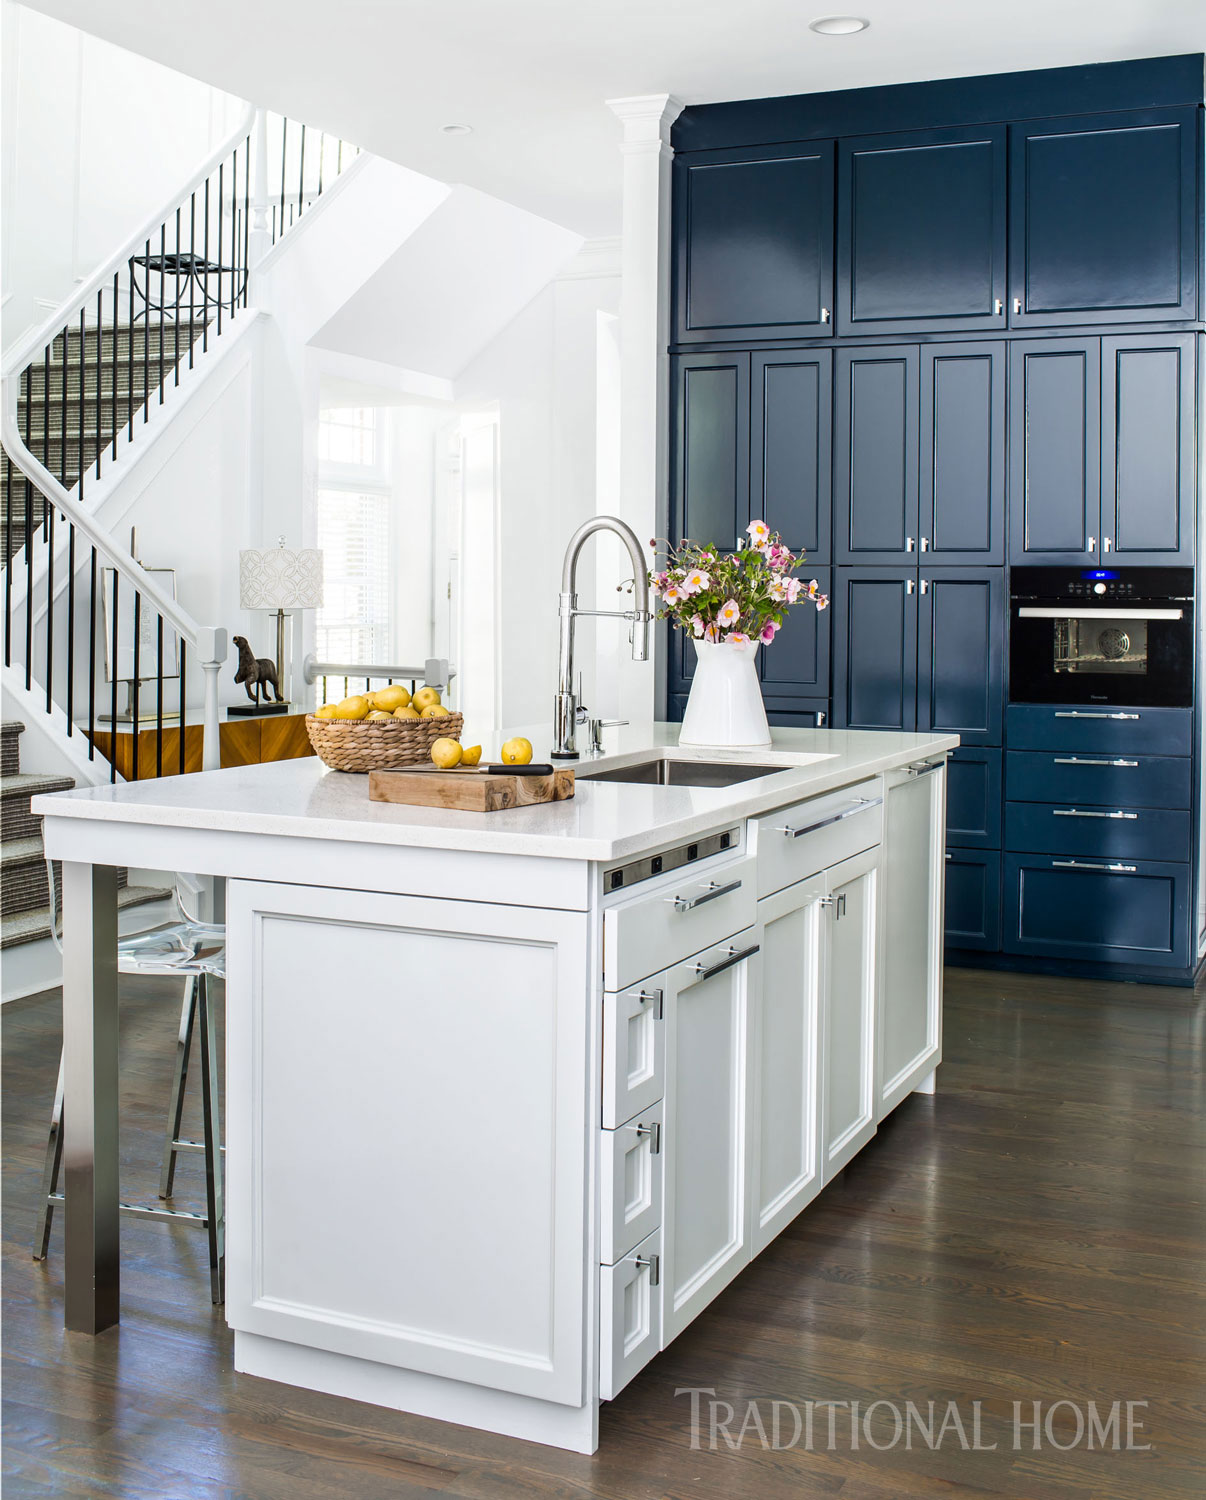 A 12-foot-tall wall of blue cabinetry echoes the backsplash color and allows a black Thermador steam oven to almost disappear. Come see 36 Best Beautiful Blue and White Kitchens to Love! #blueandwhite #bluekitchen #kitchendesign #kitchendecor #decorinspiration #beautifulkitchen